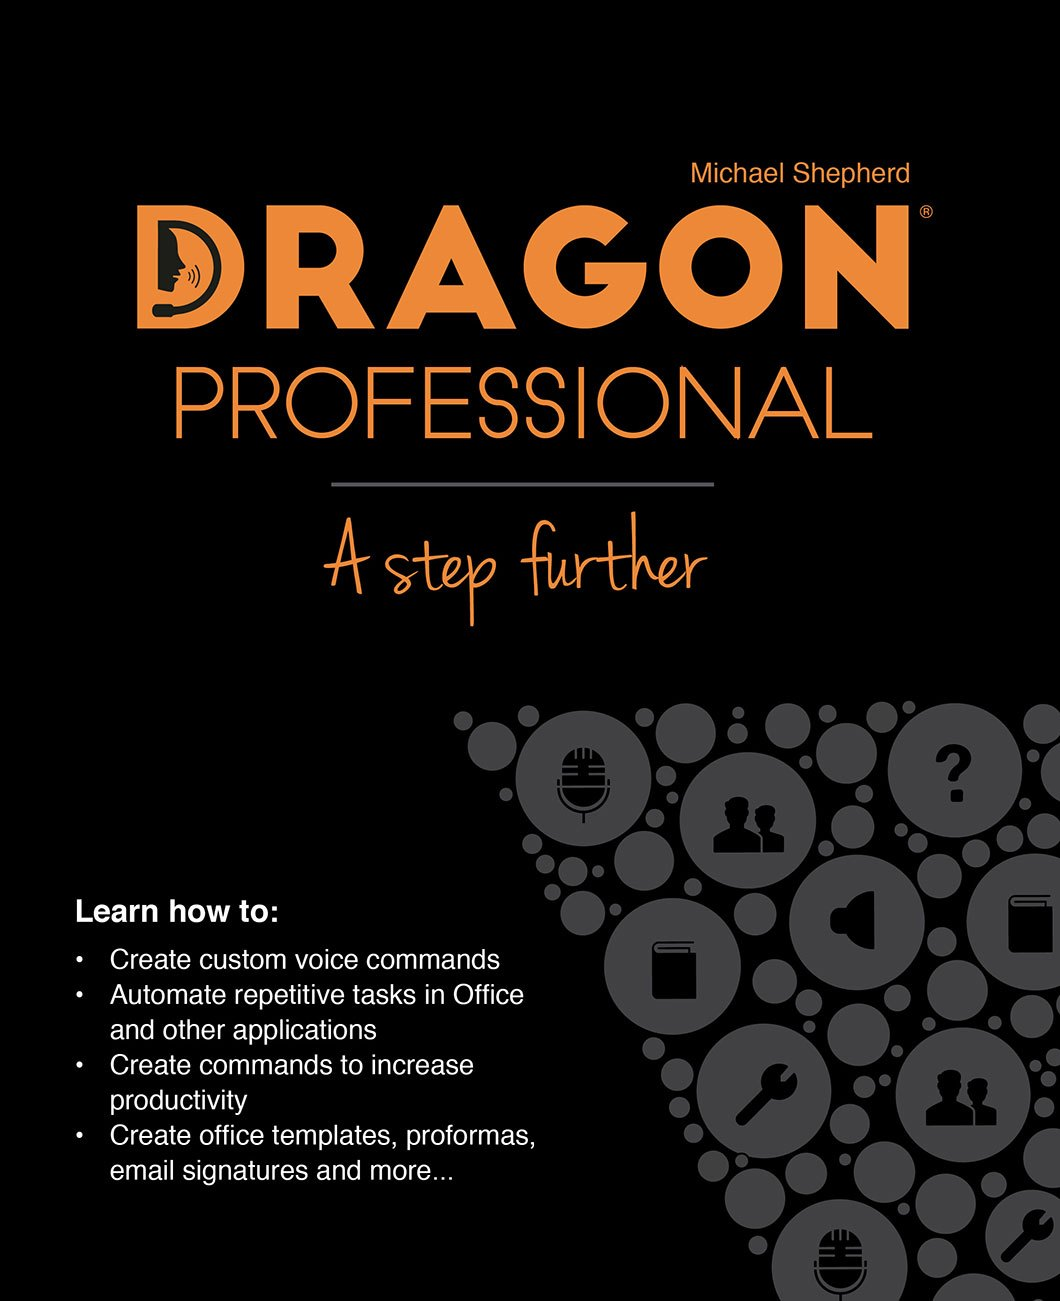 Dragon Professional - A Step Further book cover